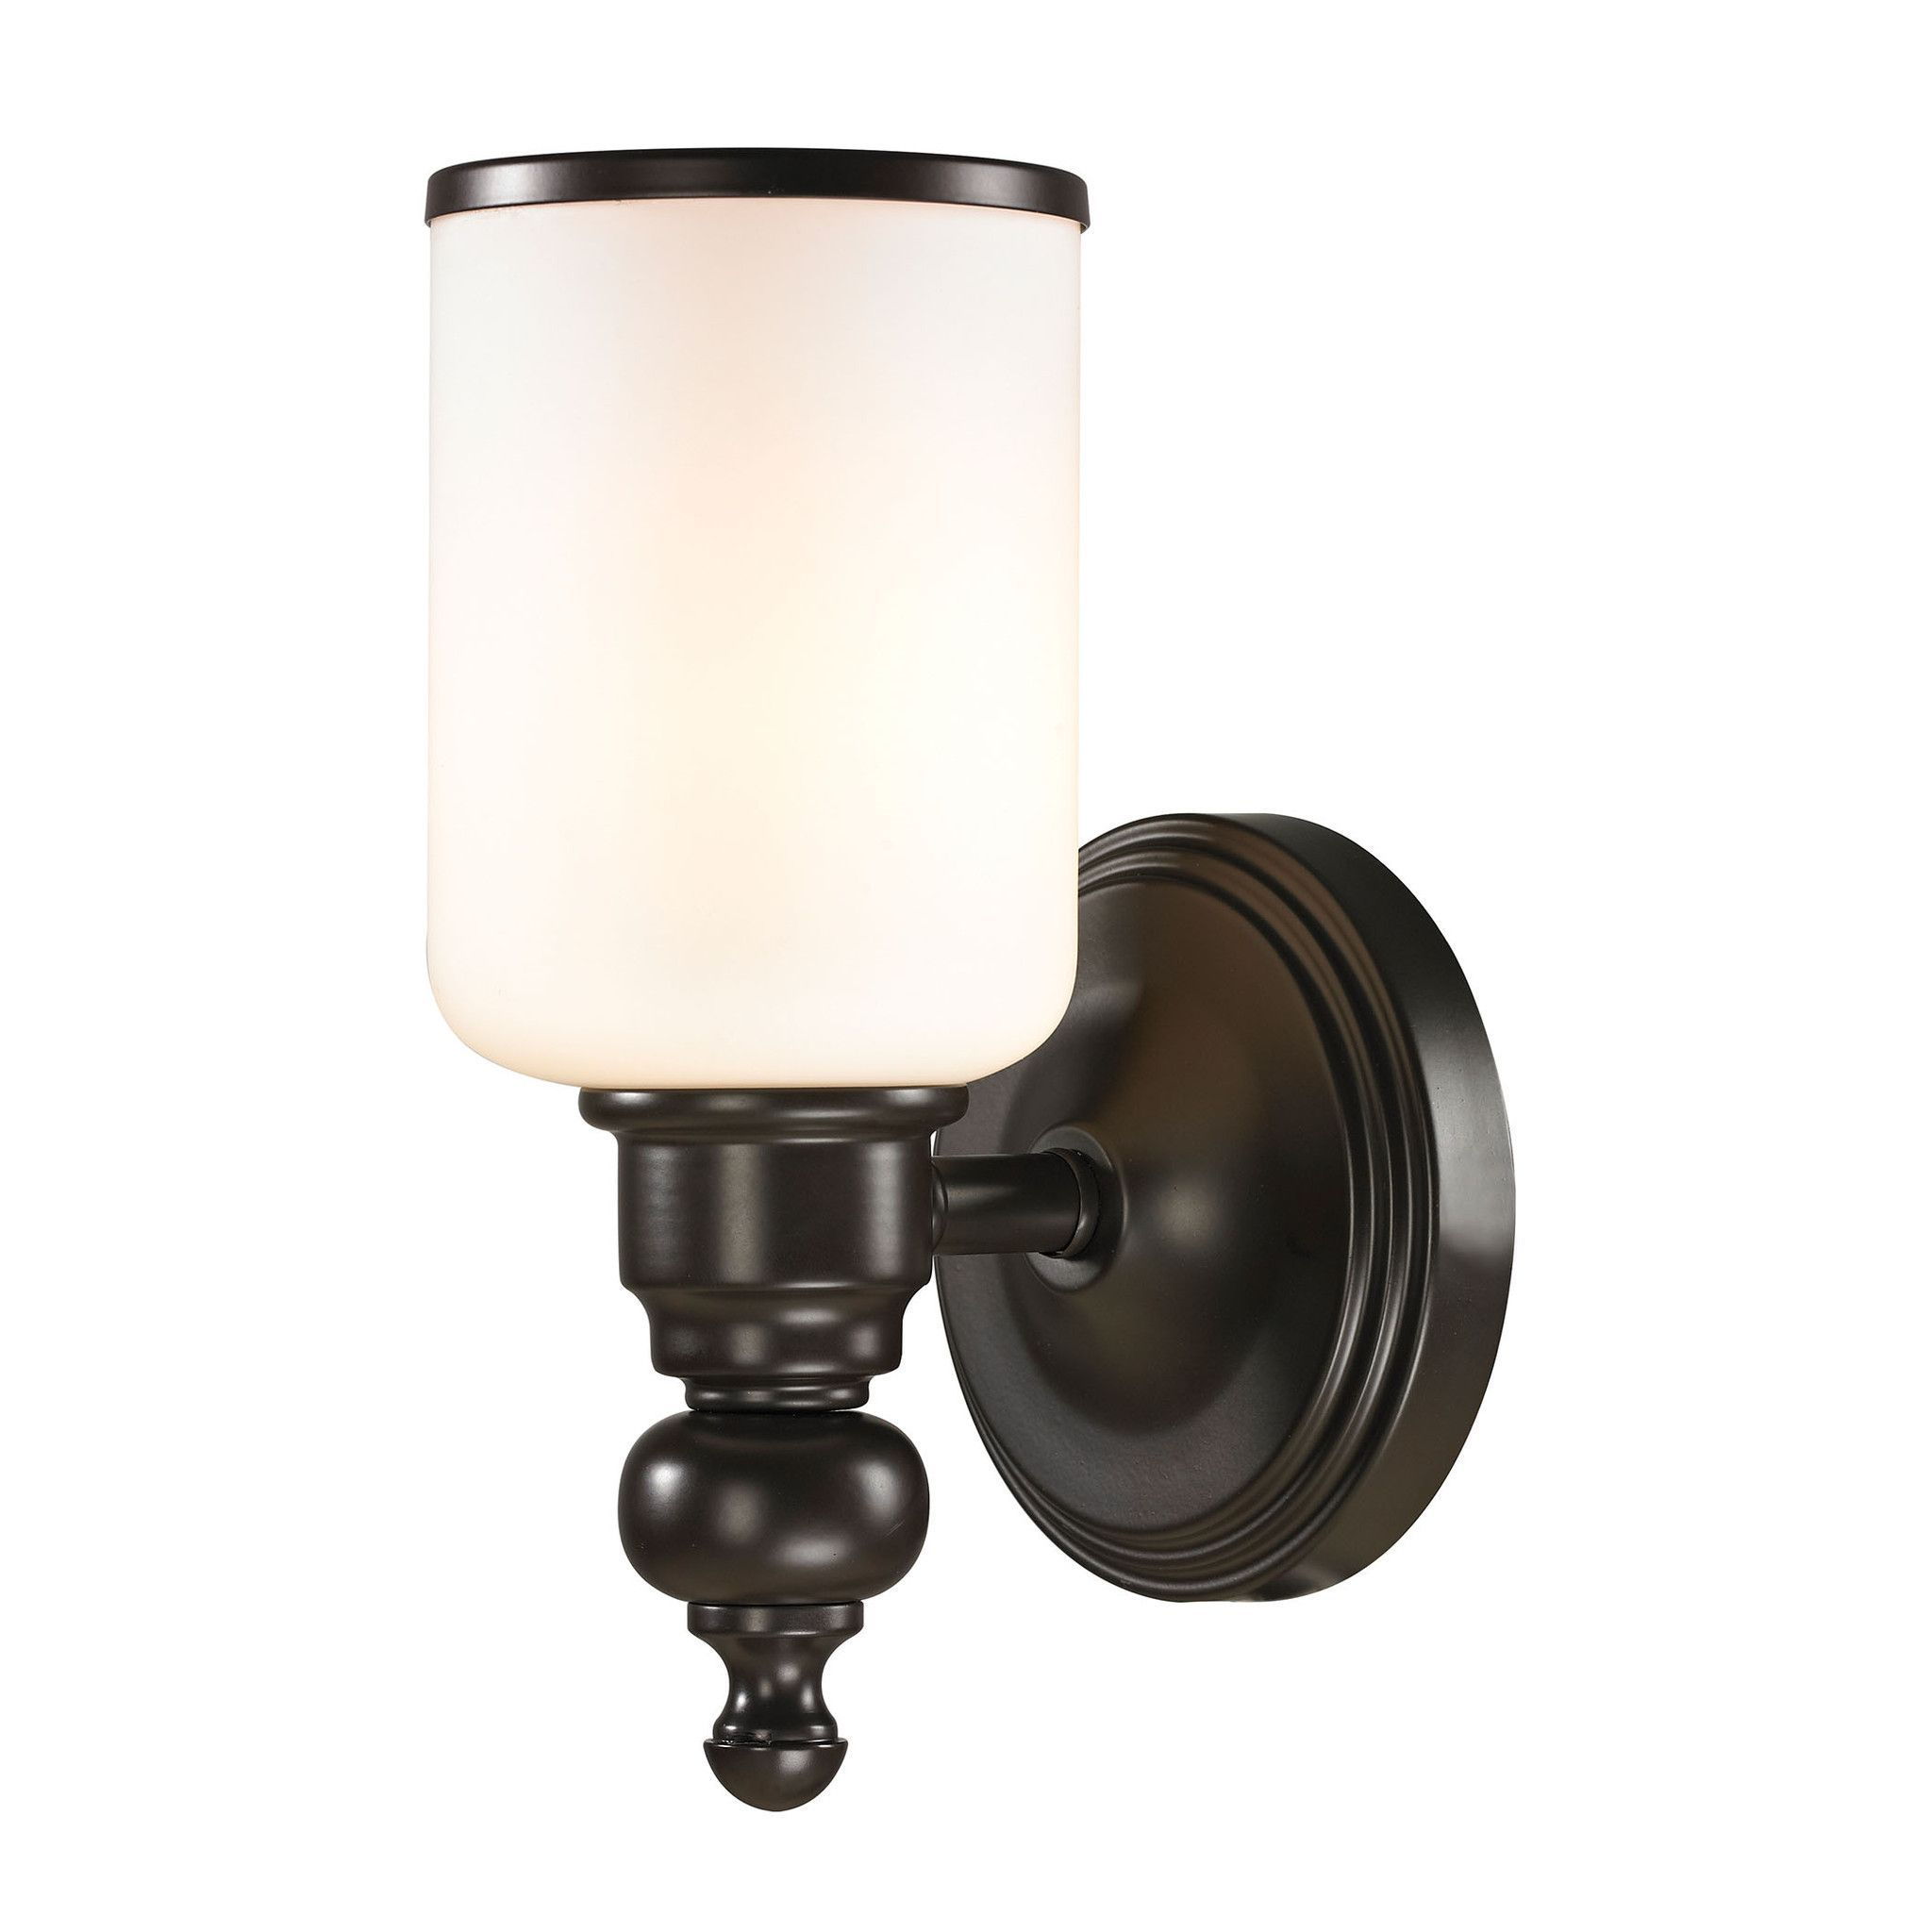 ELK Lighting 11590/1 Bristol Collection Oil Rubbed Bronze Finish